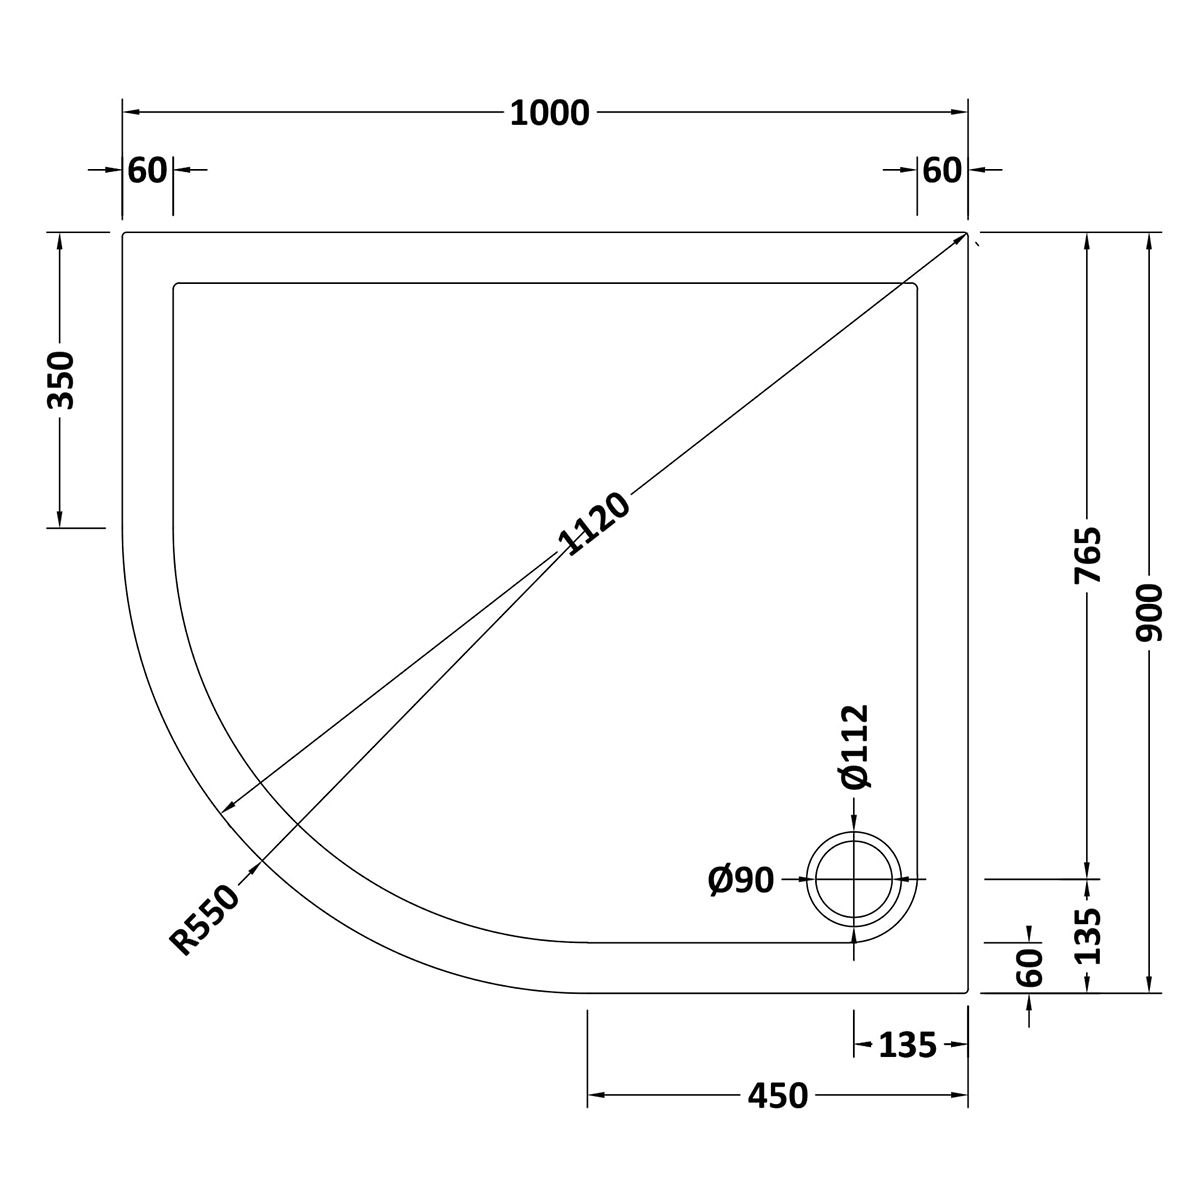 1000 x 900 Shower Tray Offset Quadrant Low Profile Left Hand by Pearlstone Line Drawing